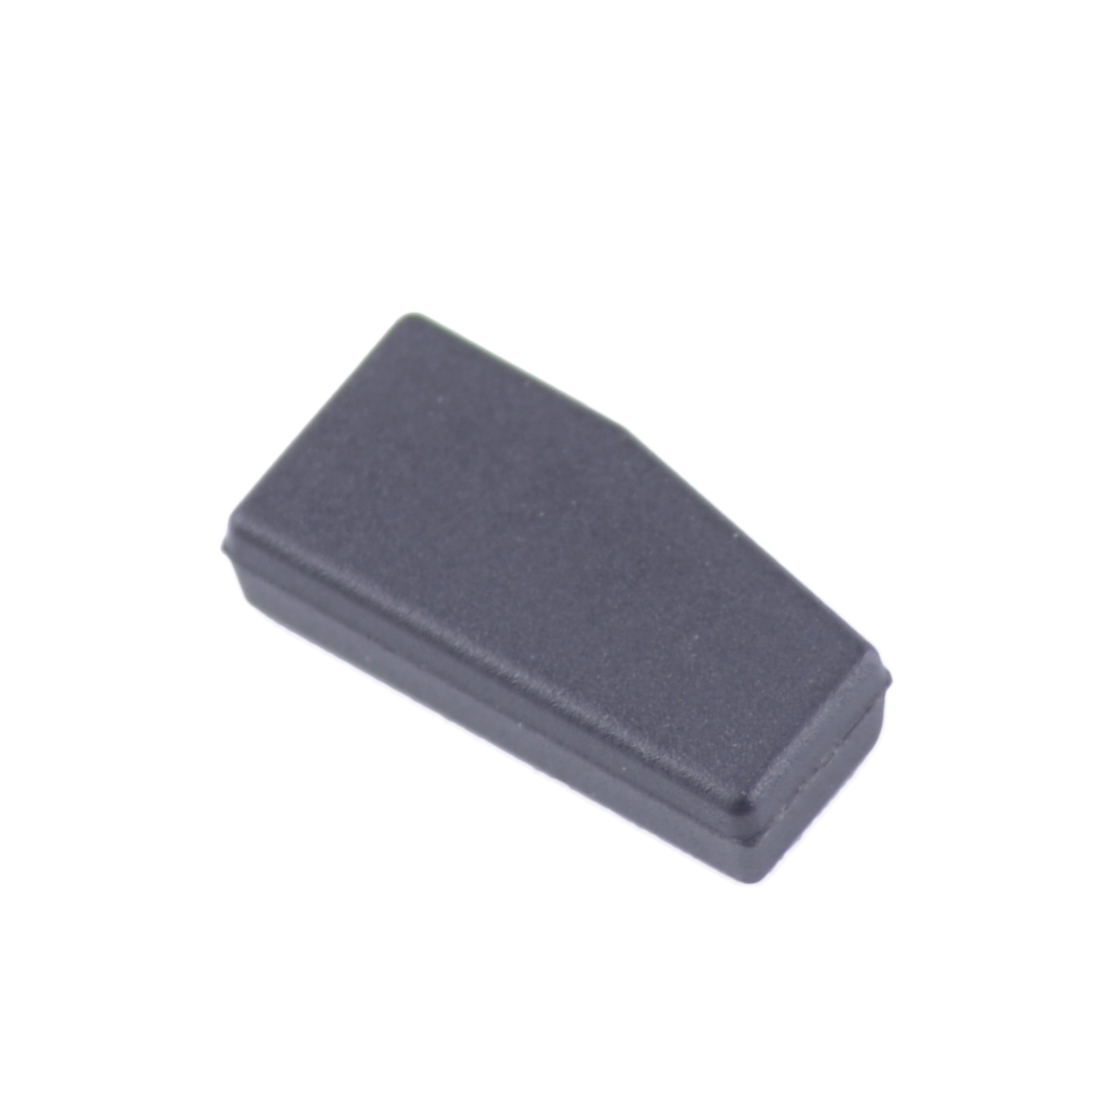 VAUXHALL ZAFIRA 2004-2005 COMPATIBLE SPARE KEY with virgin ID40 Chip.